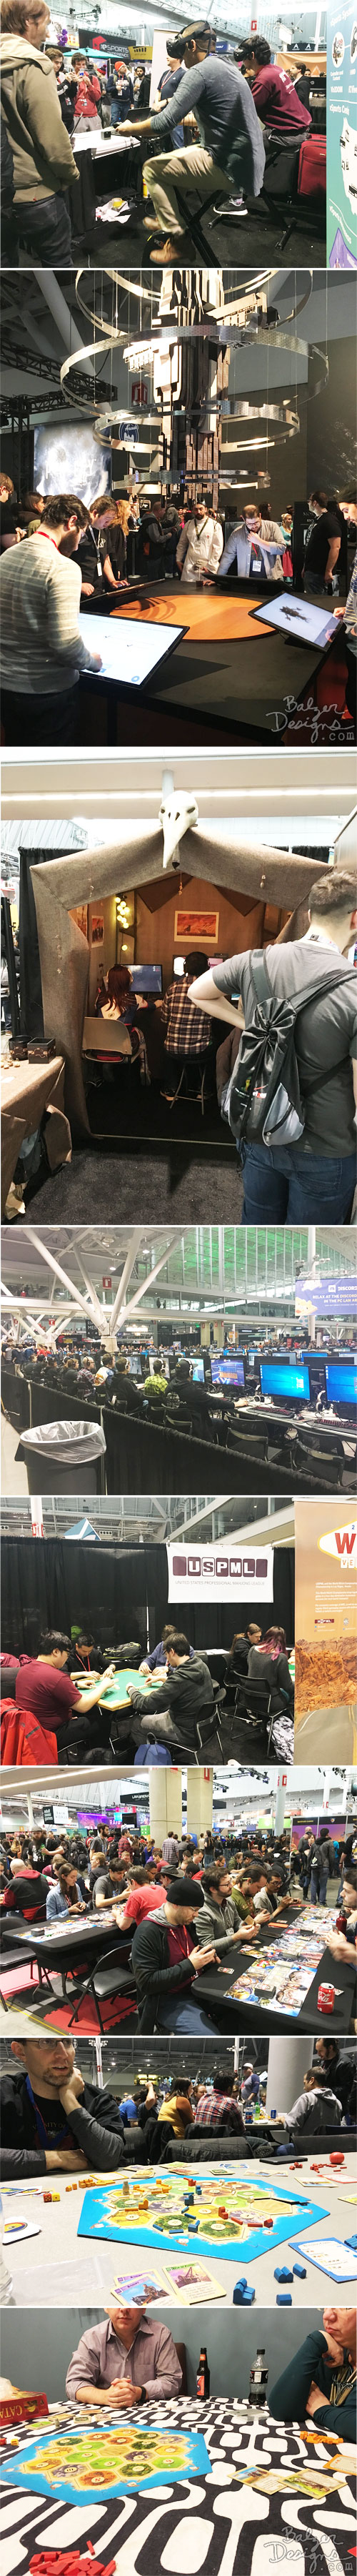 From the Balzer Designs Blog: Two Days at PAX East